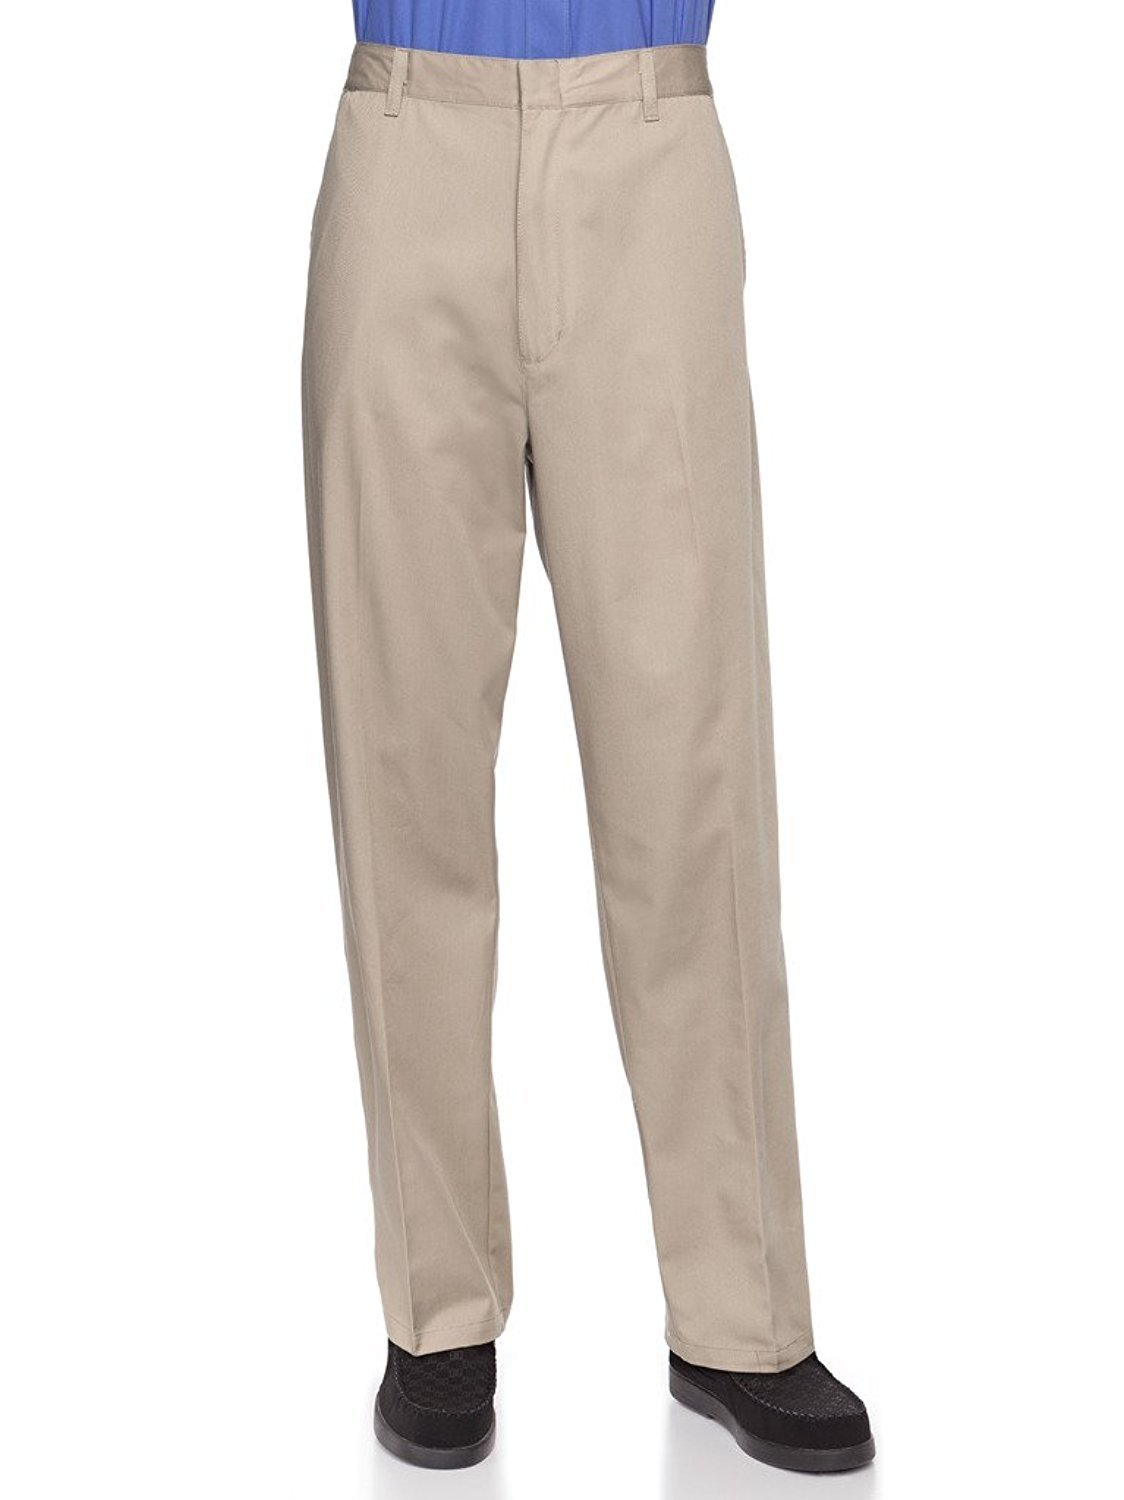 Half Elastic Flat Front Men's Slacks Big Sizes Available